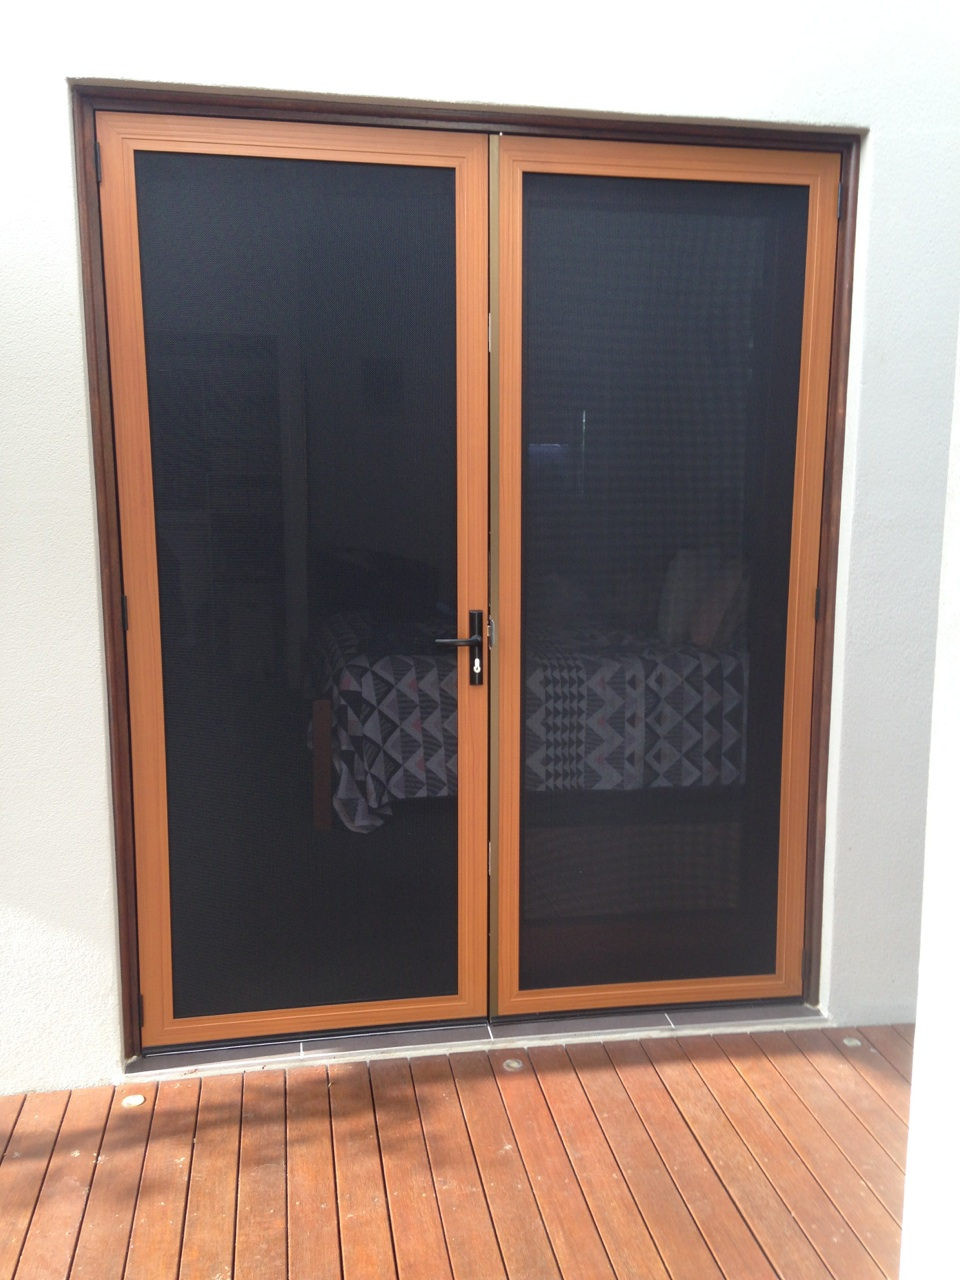 Secureview Double Doors with Timber Look Frame & Secureview Double Doors with Timber Look Frame - Townsville Windows ...